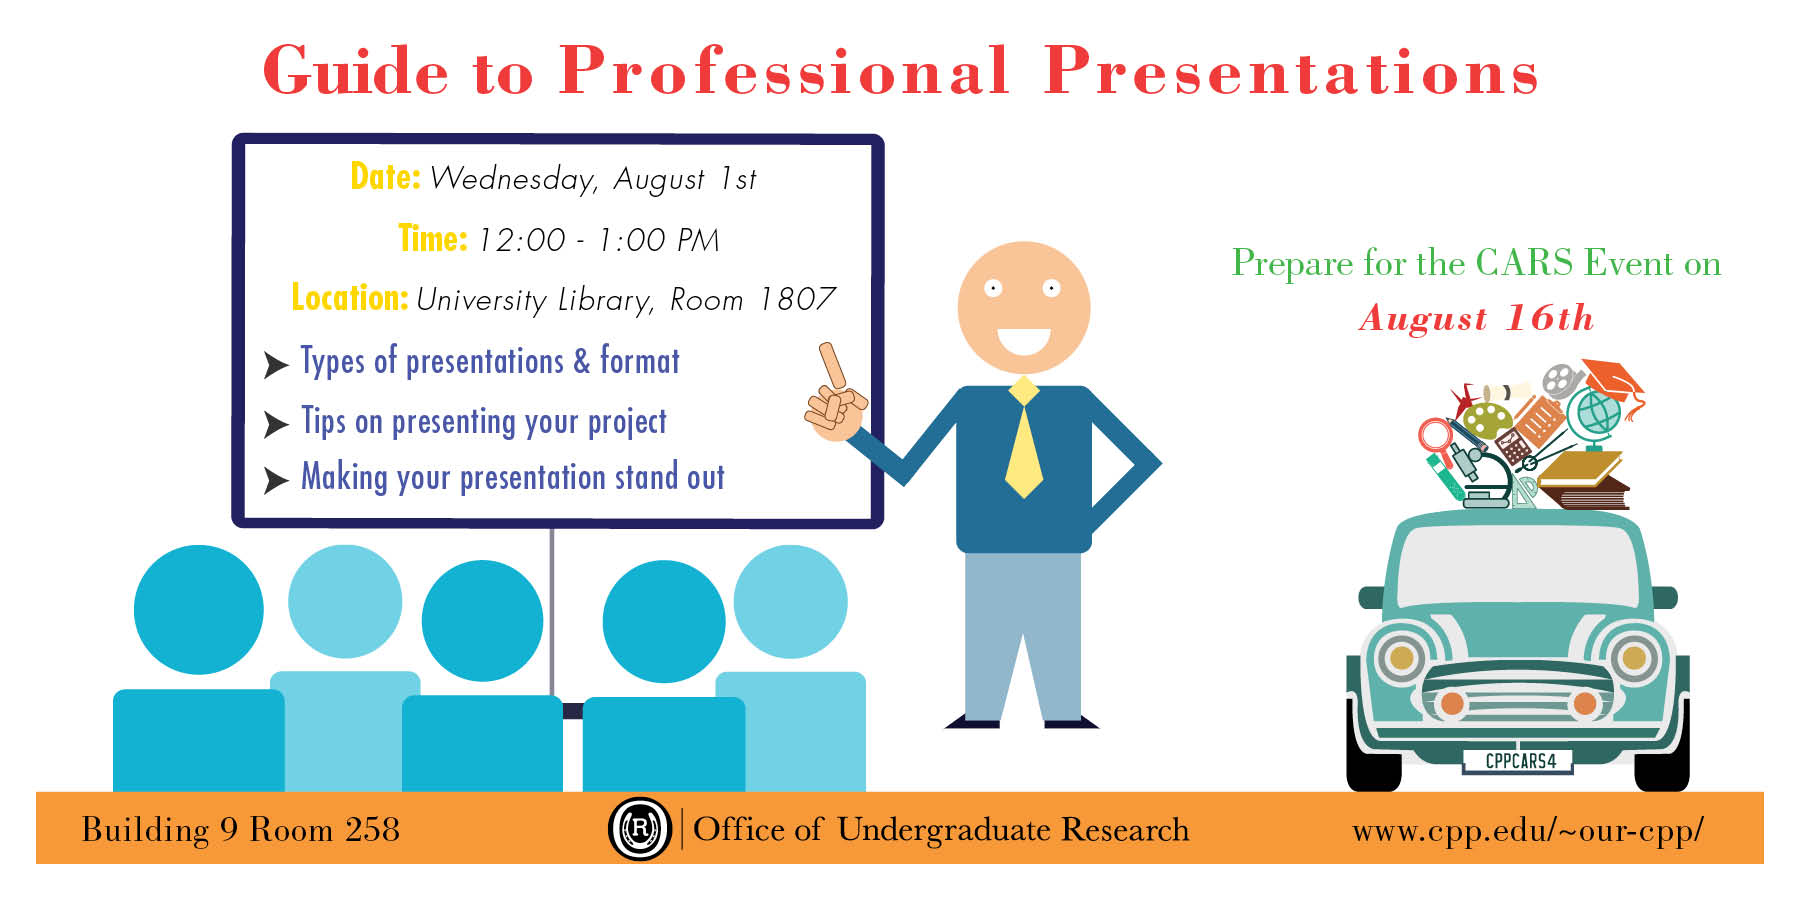 Guide to Professional Presentations